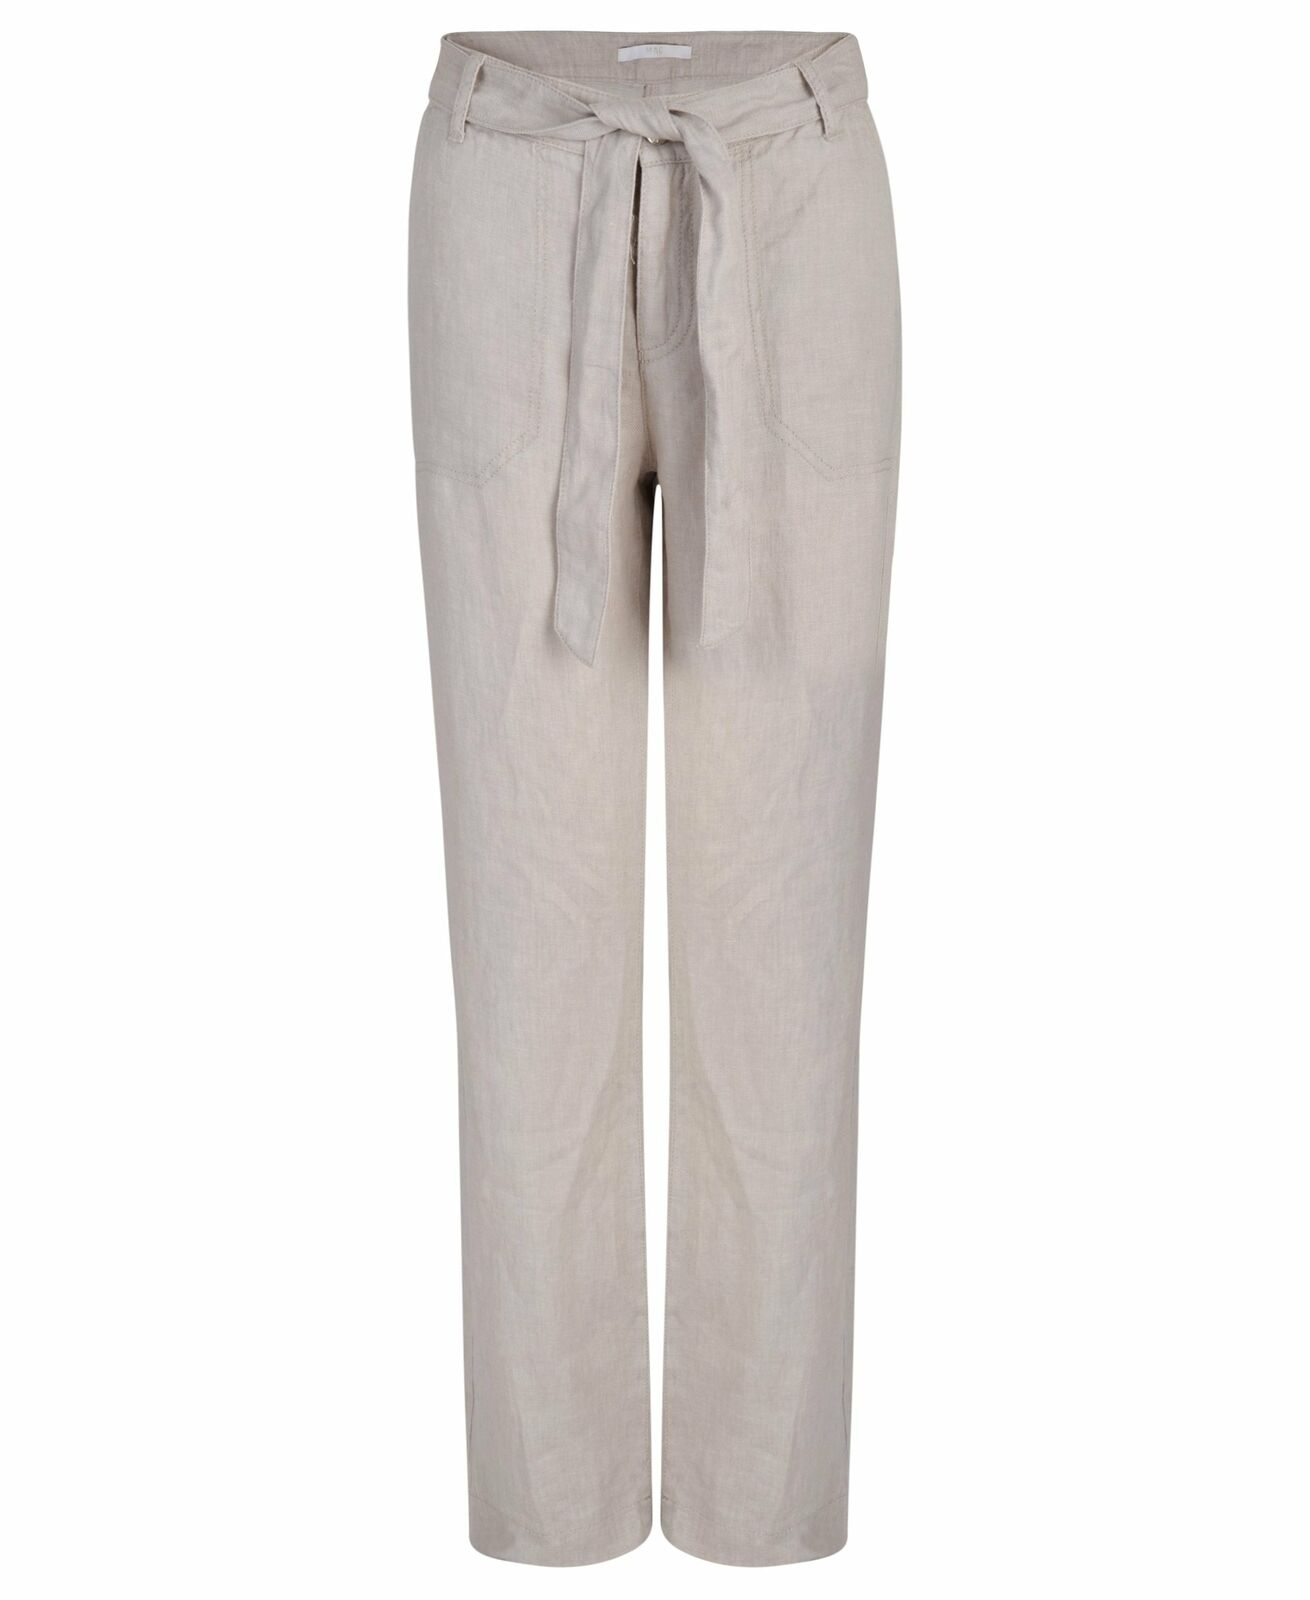 Women's White or Beige MAC Nelly Pure Linen Holiday Trousers UK Size 8 - 16